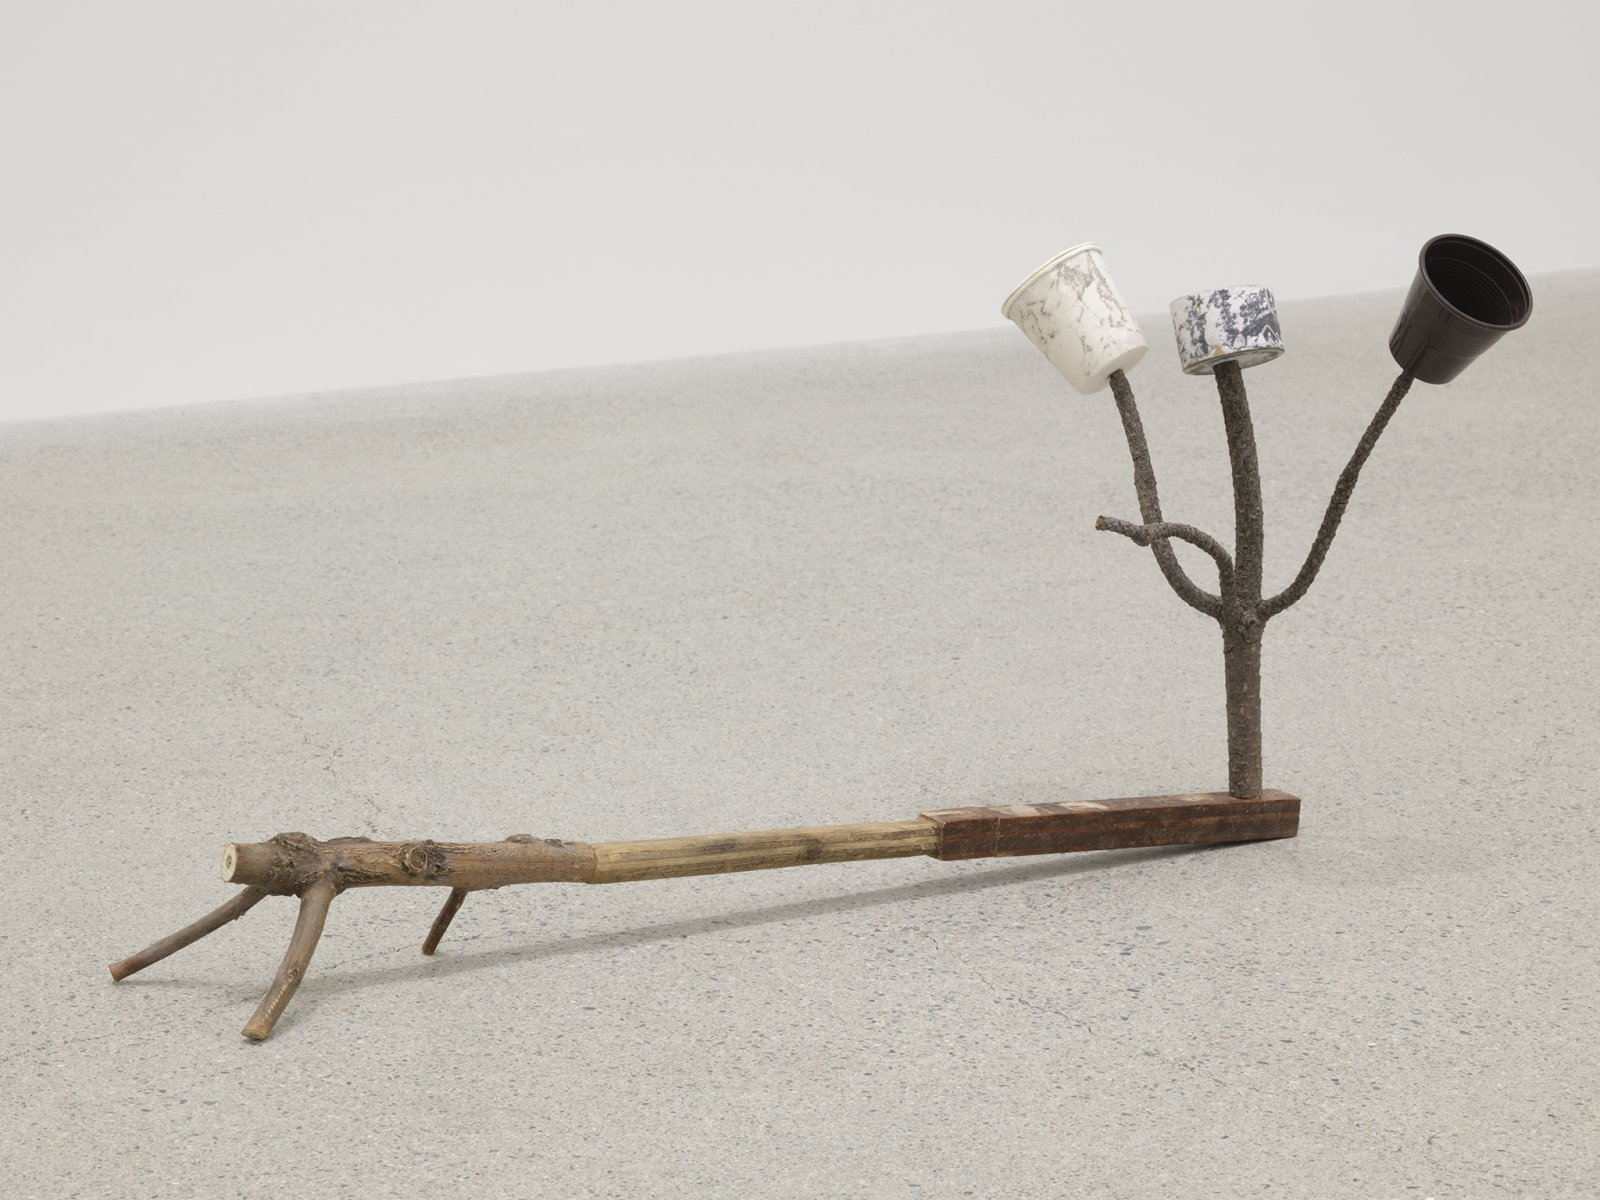 Ashes Withyman, Formula describing a soul rumbling off through the sky after leaving the body, 2019, found branches, plywood with paint, plastic espresso cup, paper cup, lid, cardboard, push pin, 12 x 25 x 10 in. (31 x 64 x 25 cm) by Ashes Withyman